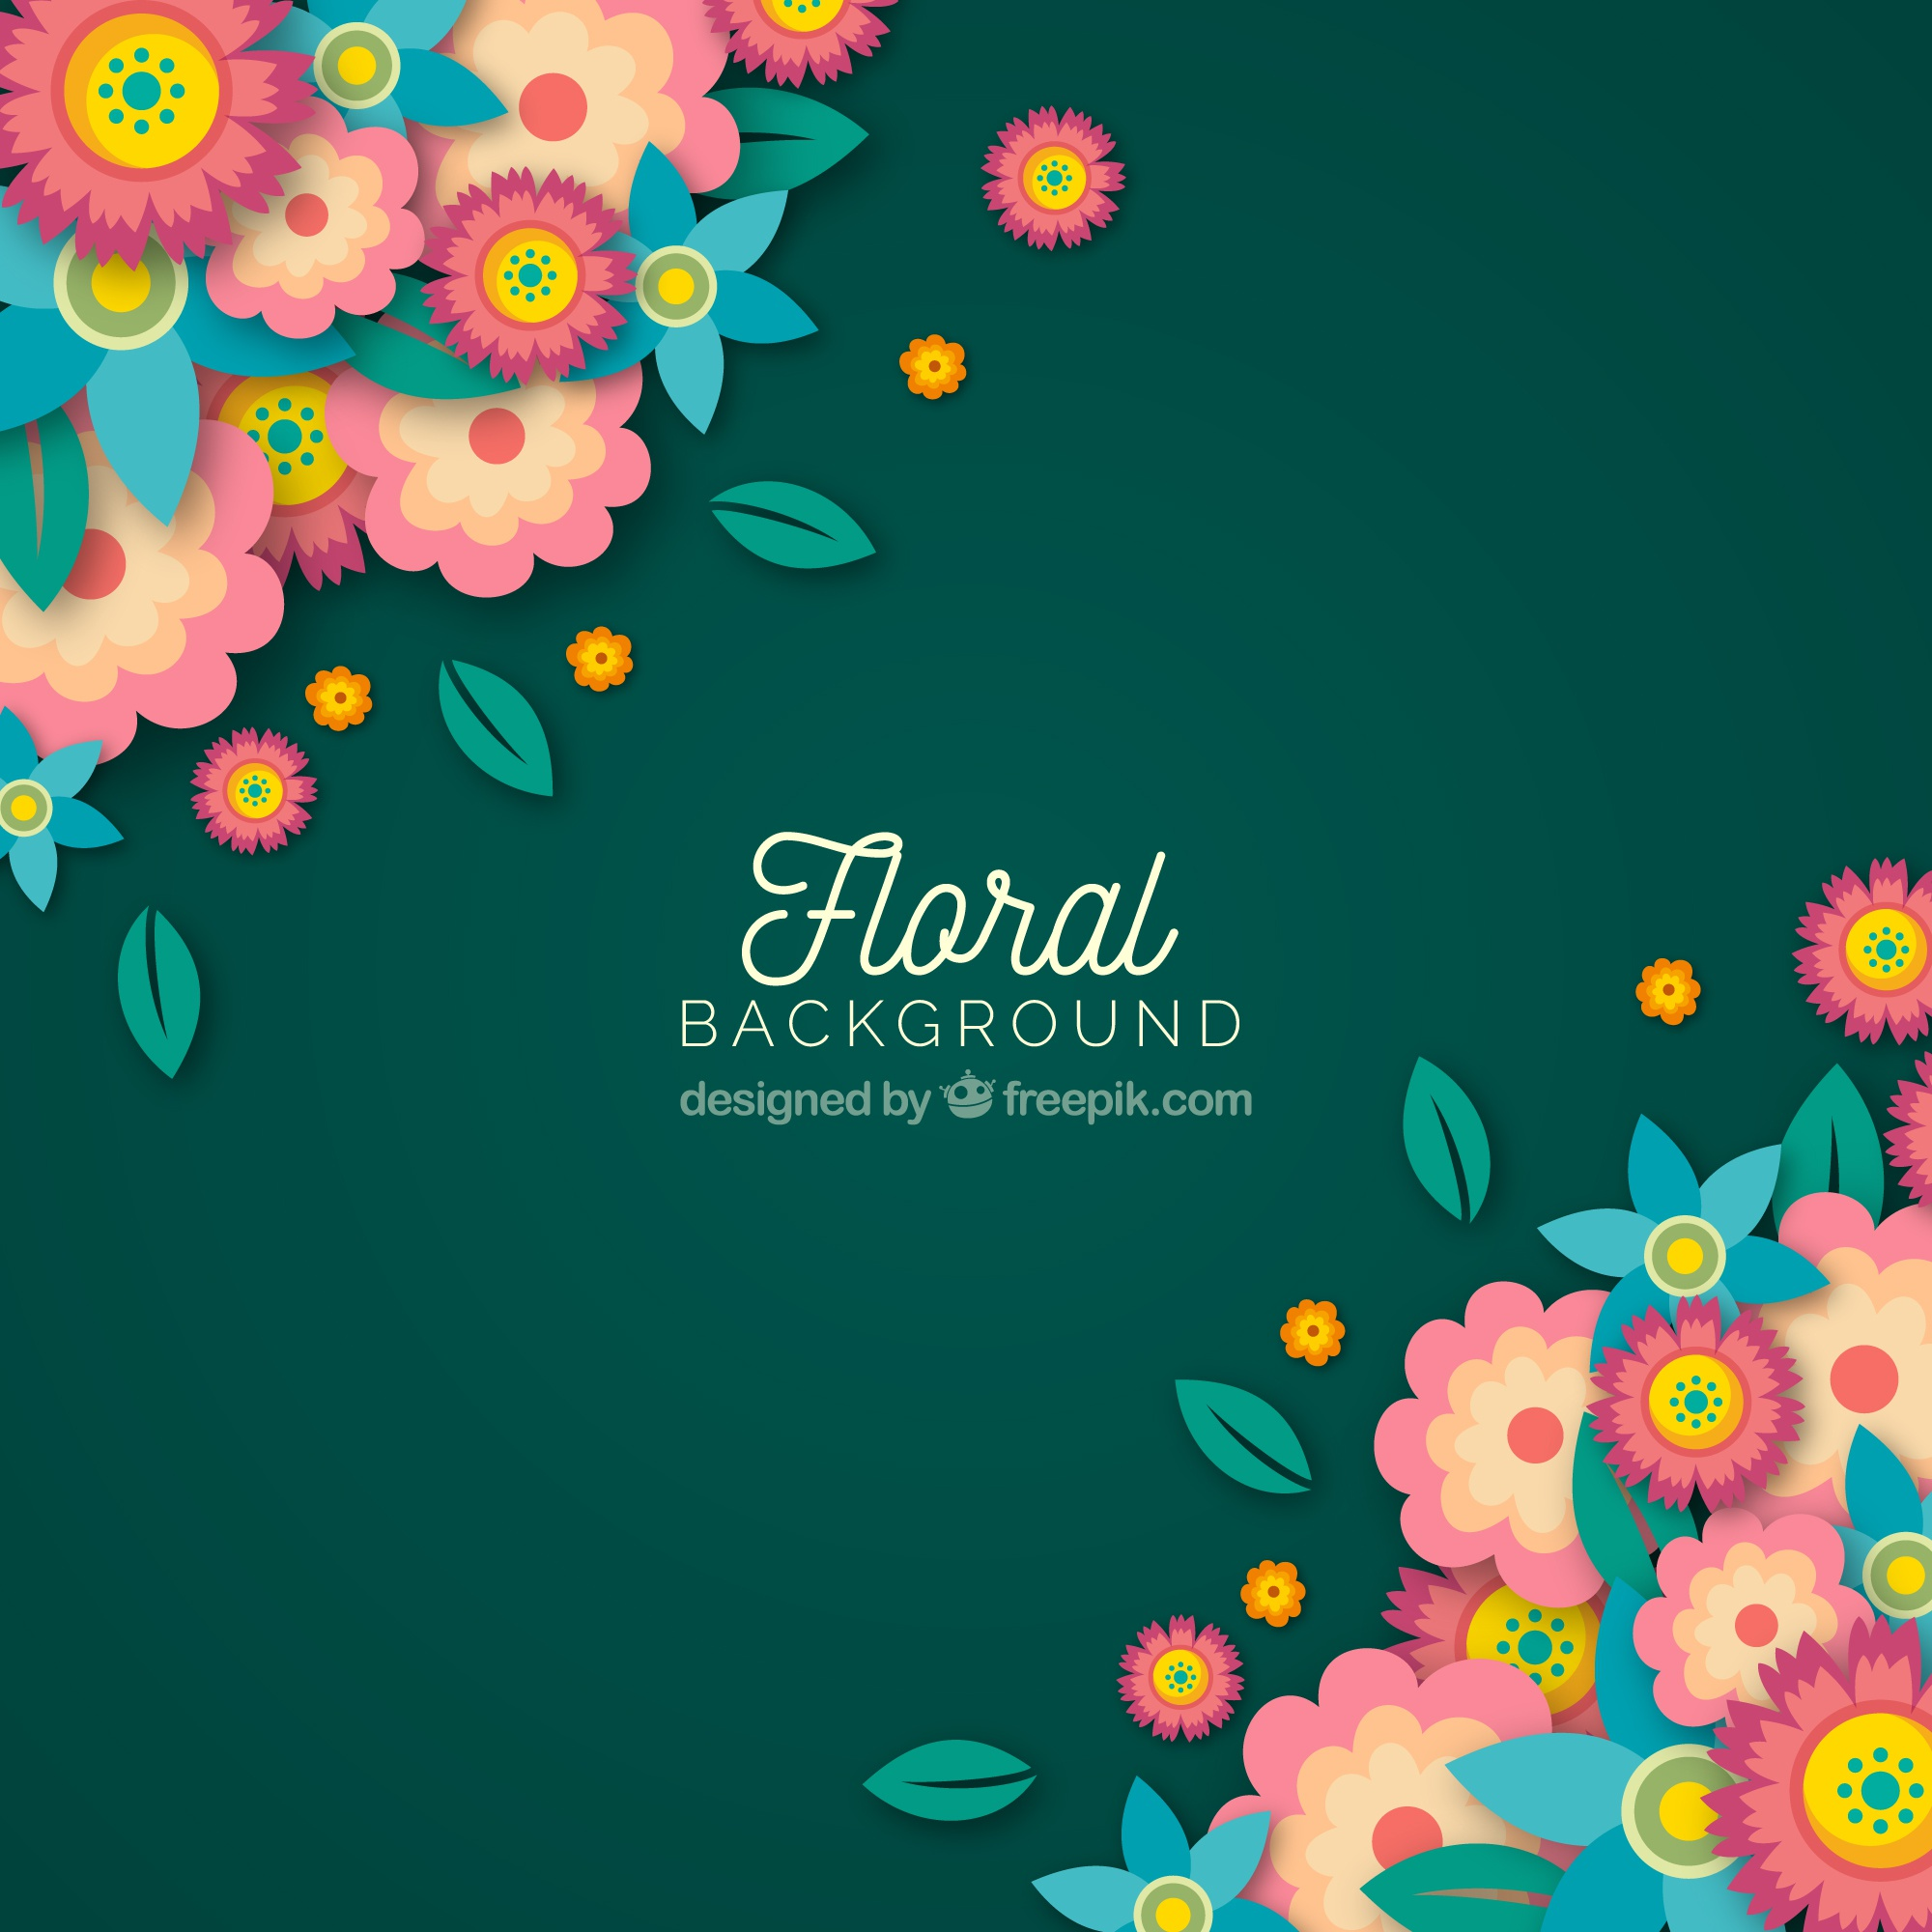 Colorful floral background with flat design